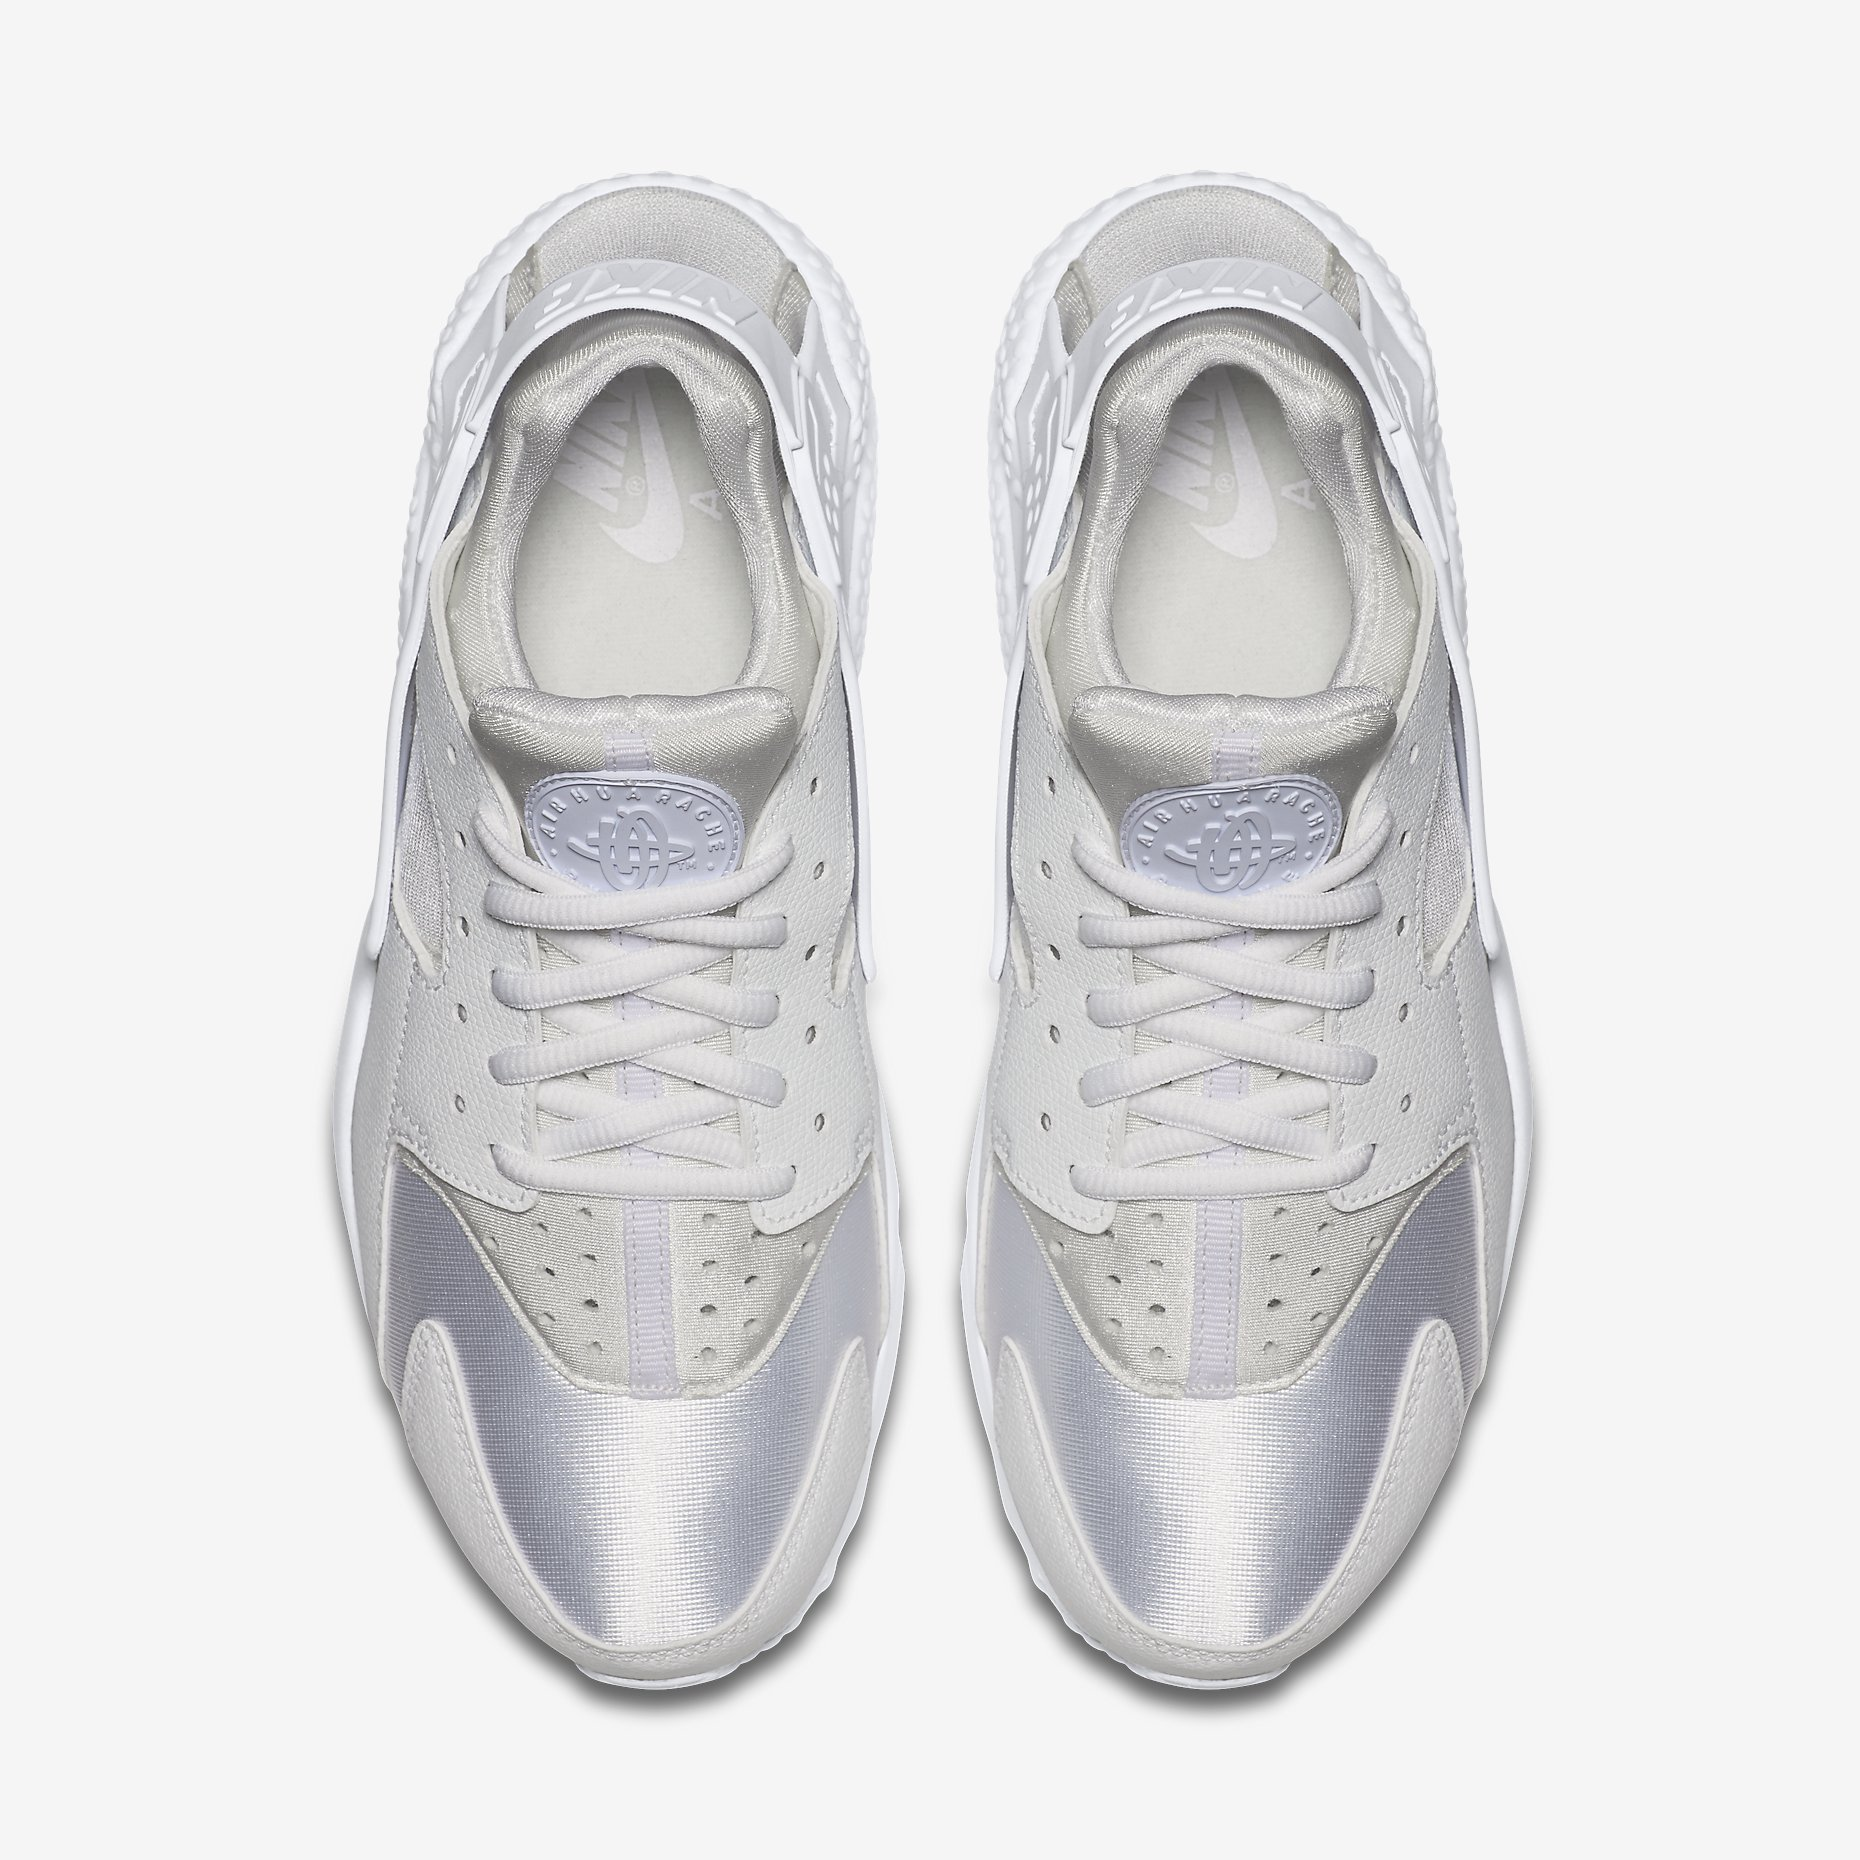 Nike Air Huarache Womens Shoes